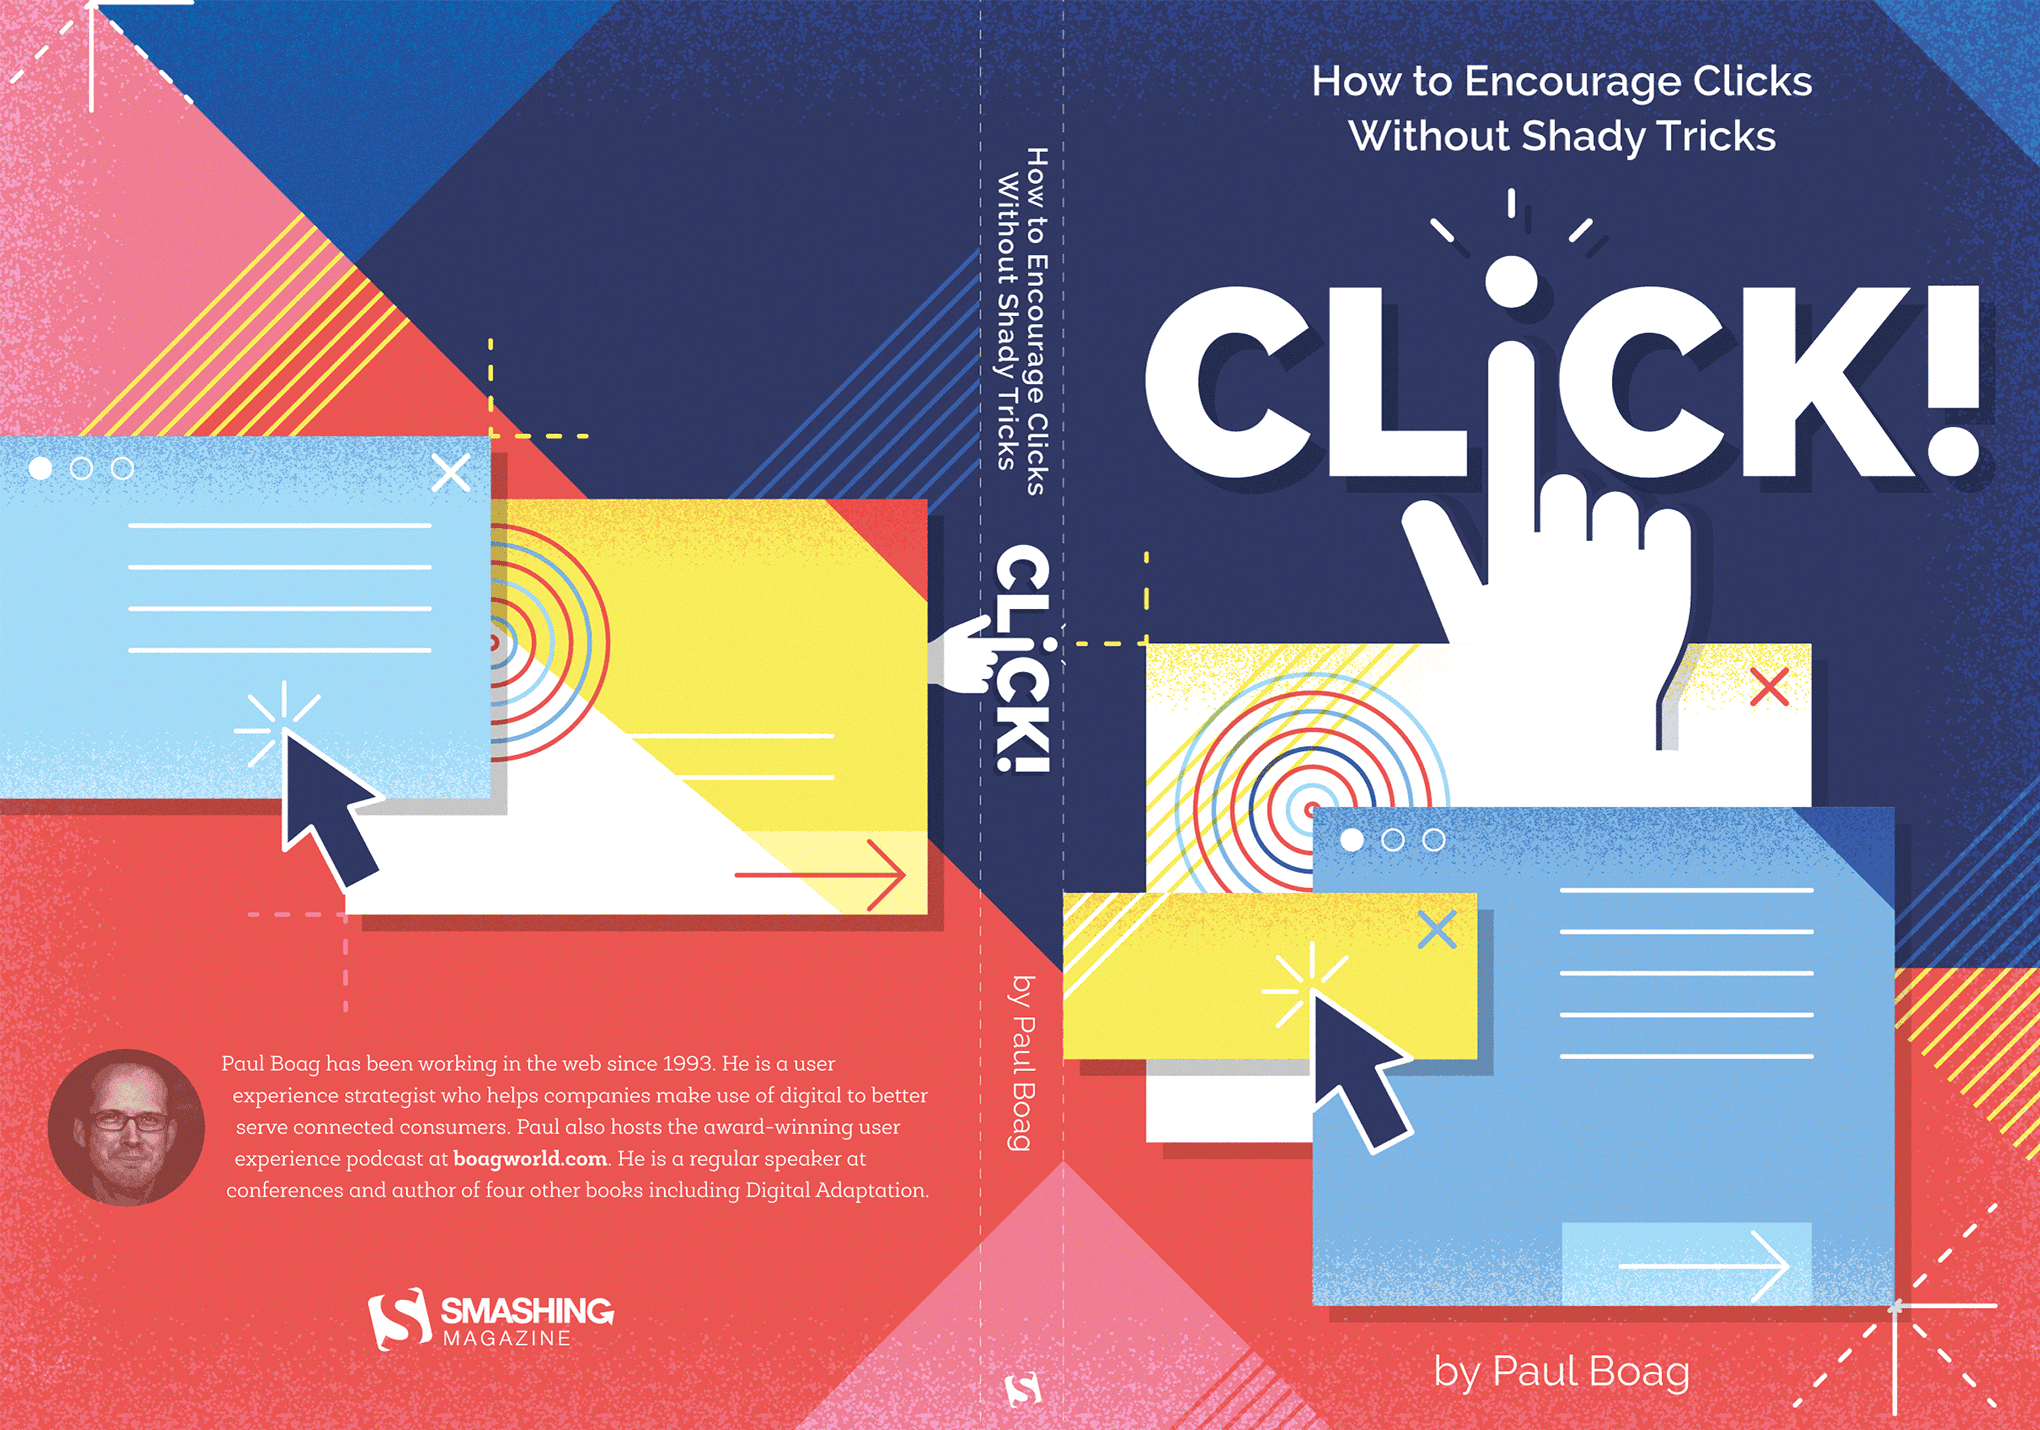 First design proposal of the Click! book's full cover including spine and back